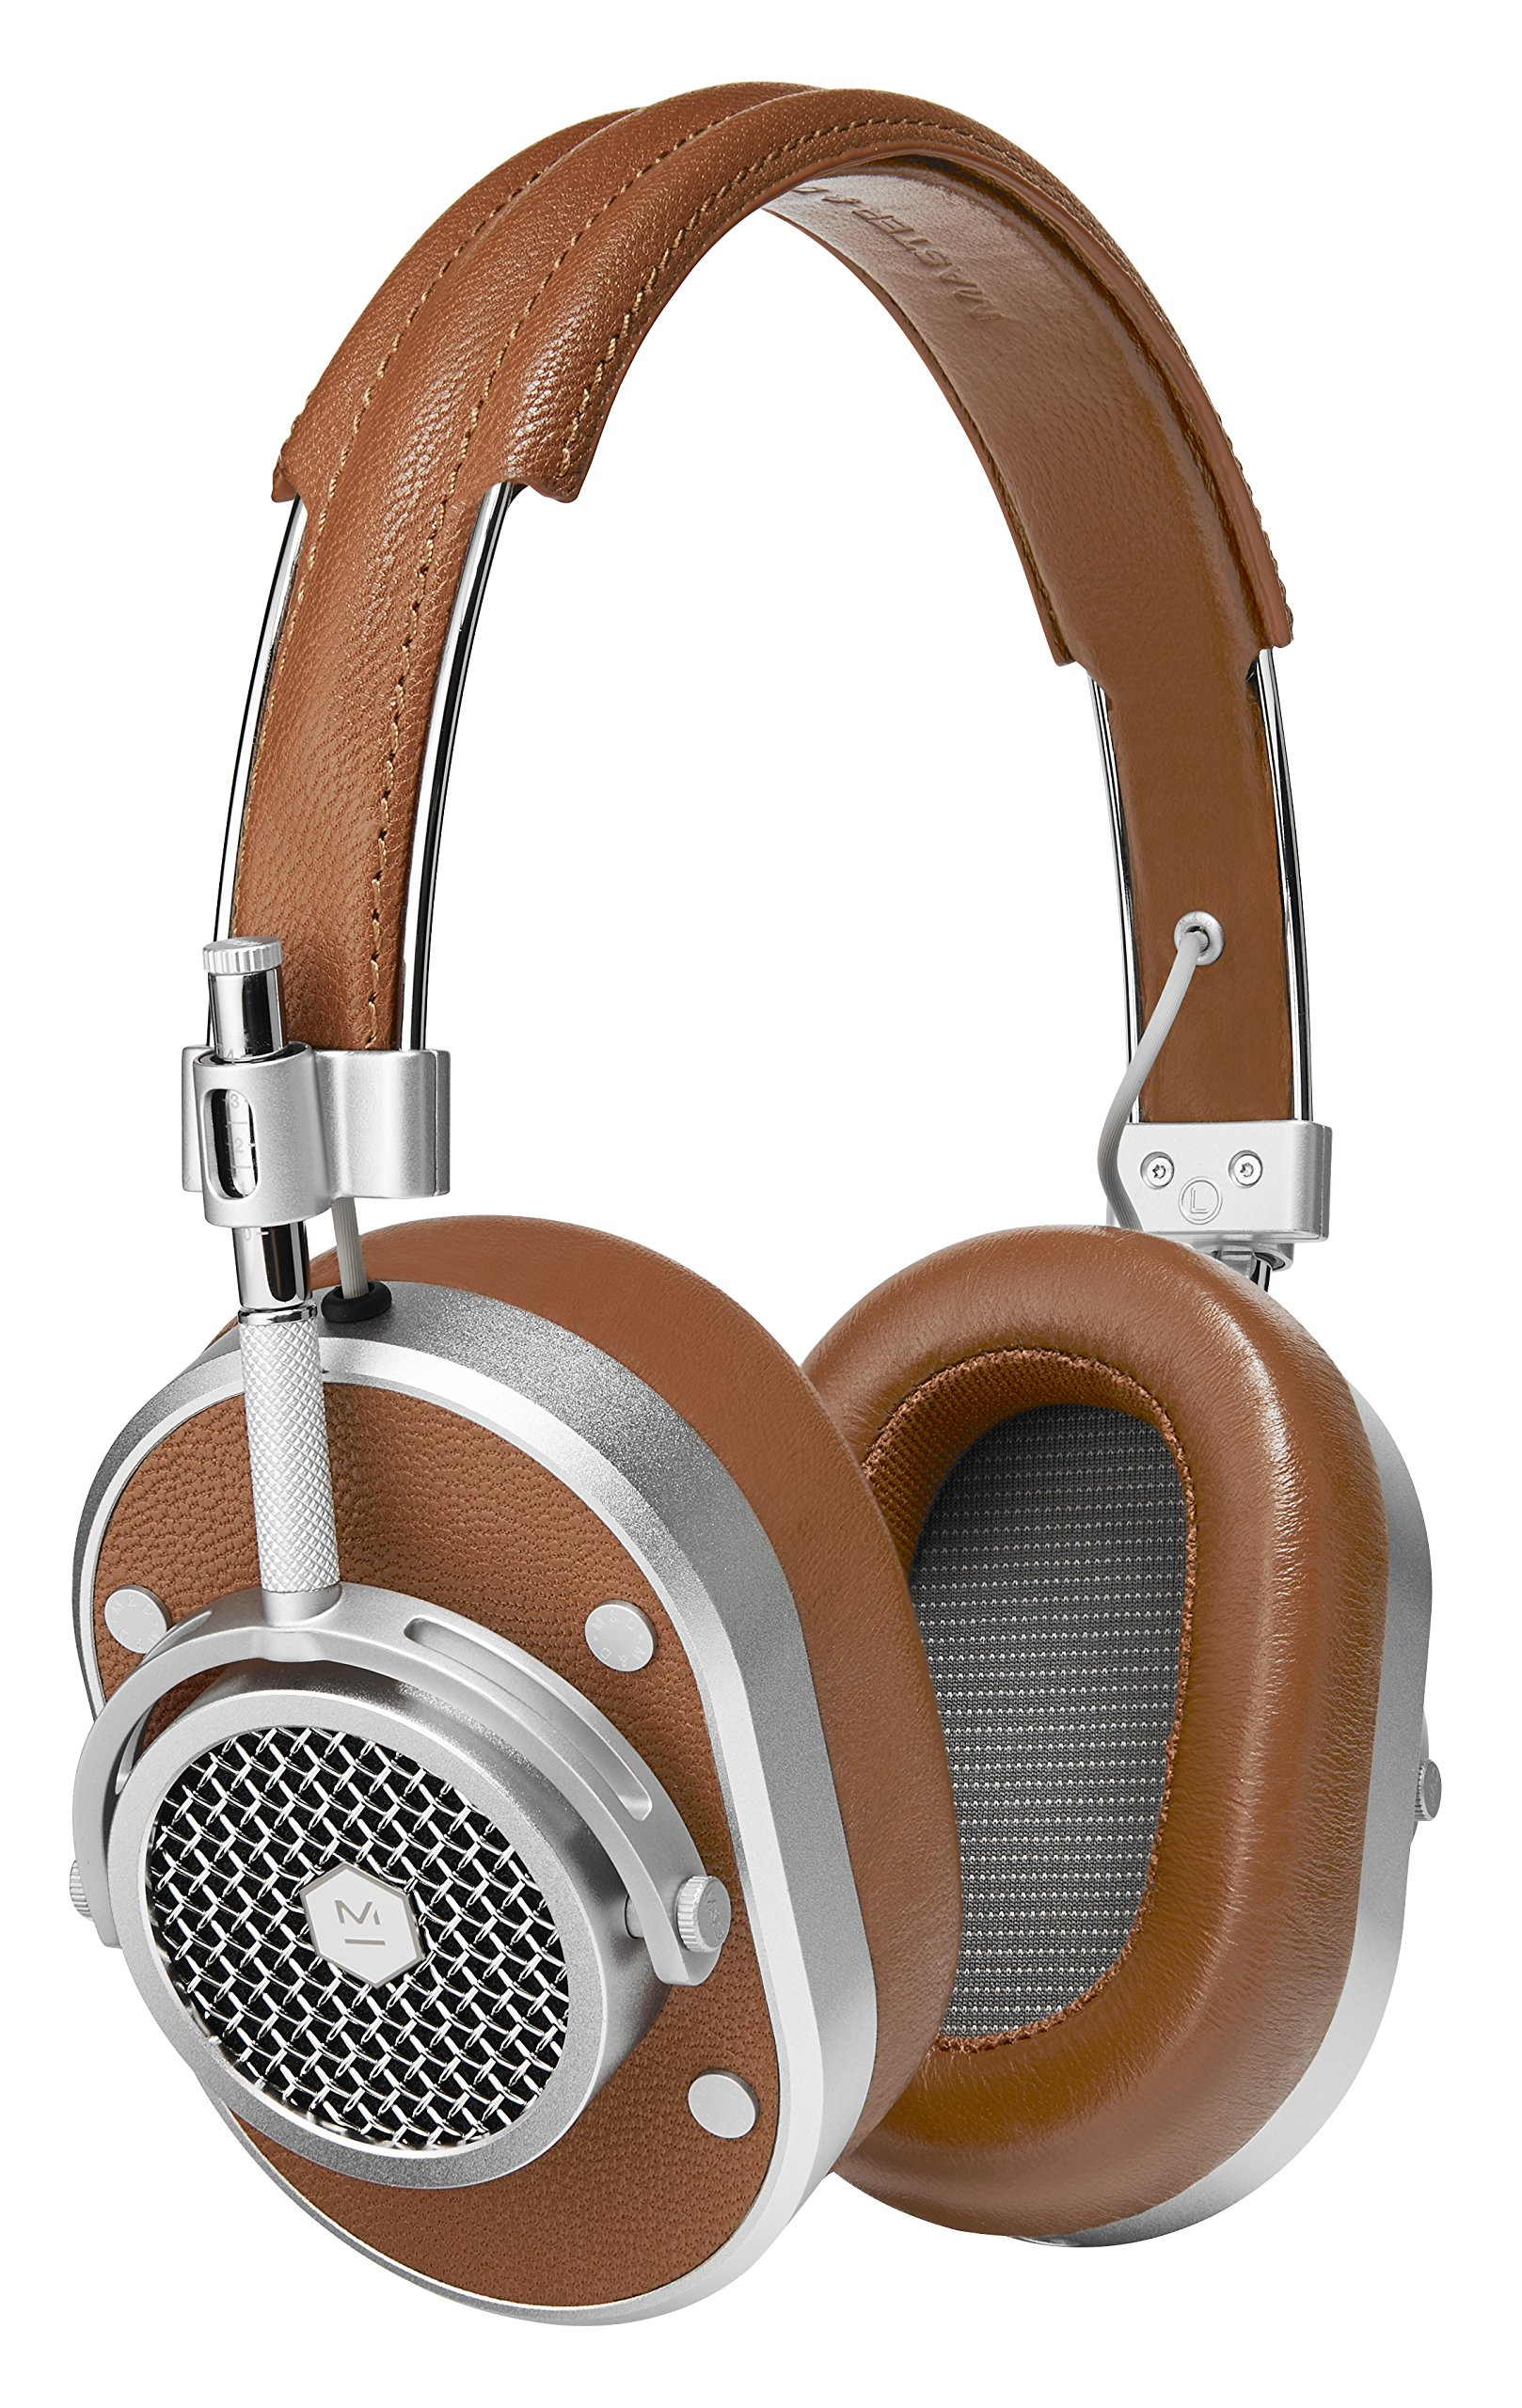 Auriculares Master & Dynamic Award Winning MH40 Over-Ear Closed Back con Superior Sound Quality y Highest Level of Desig